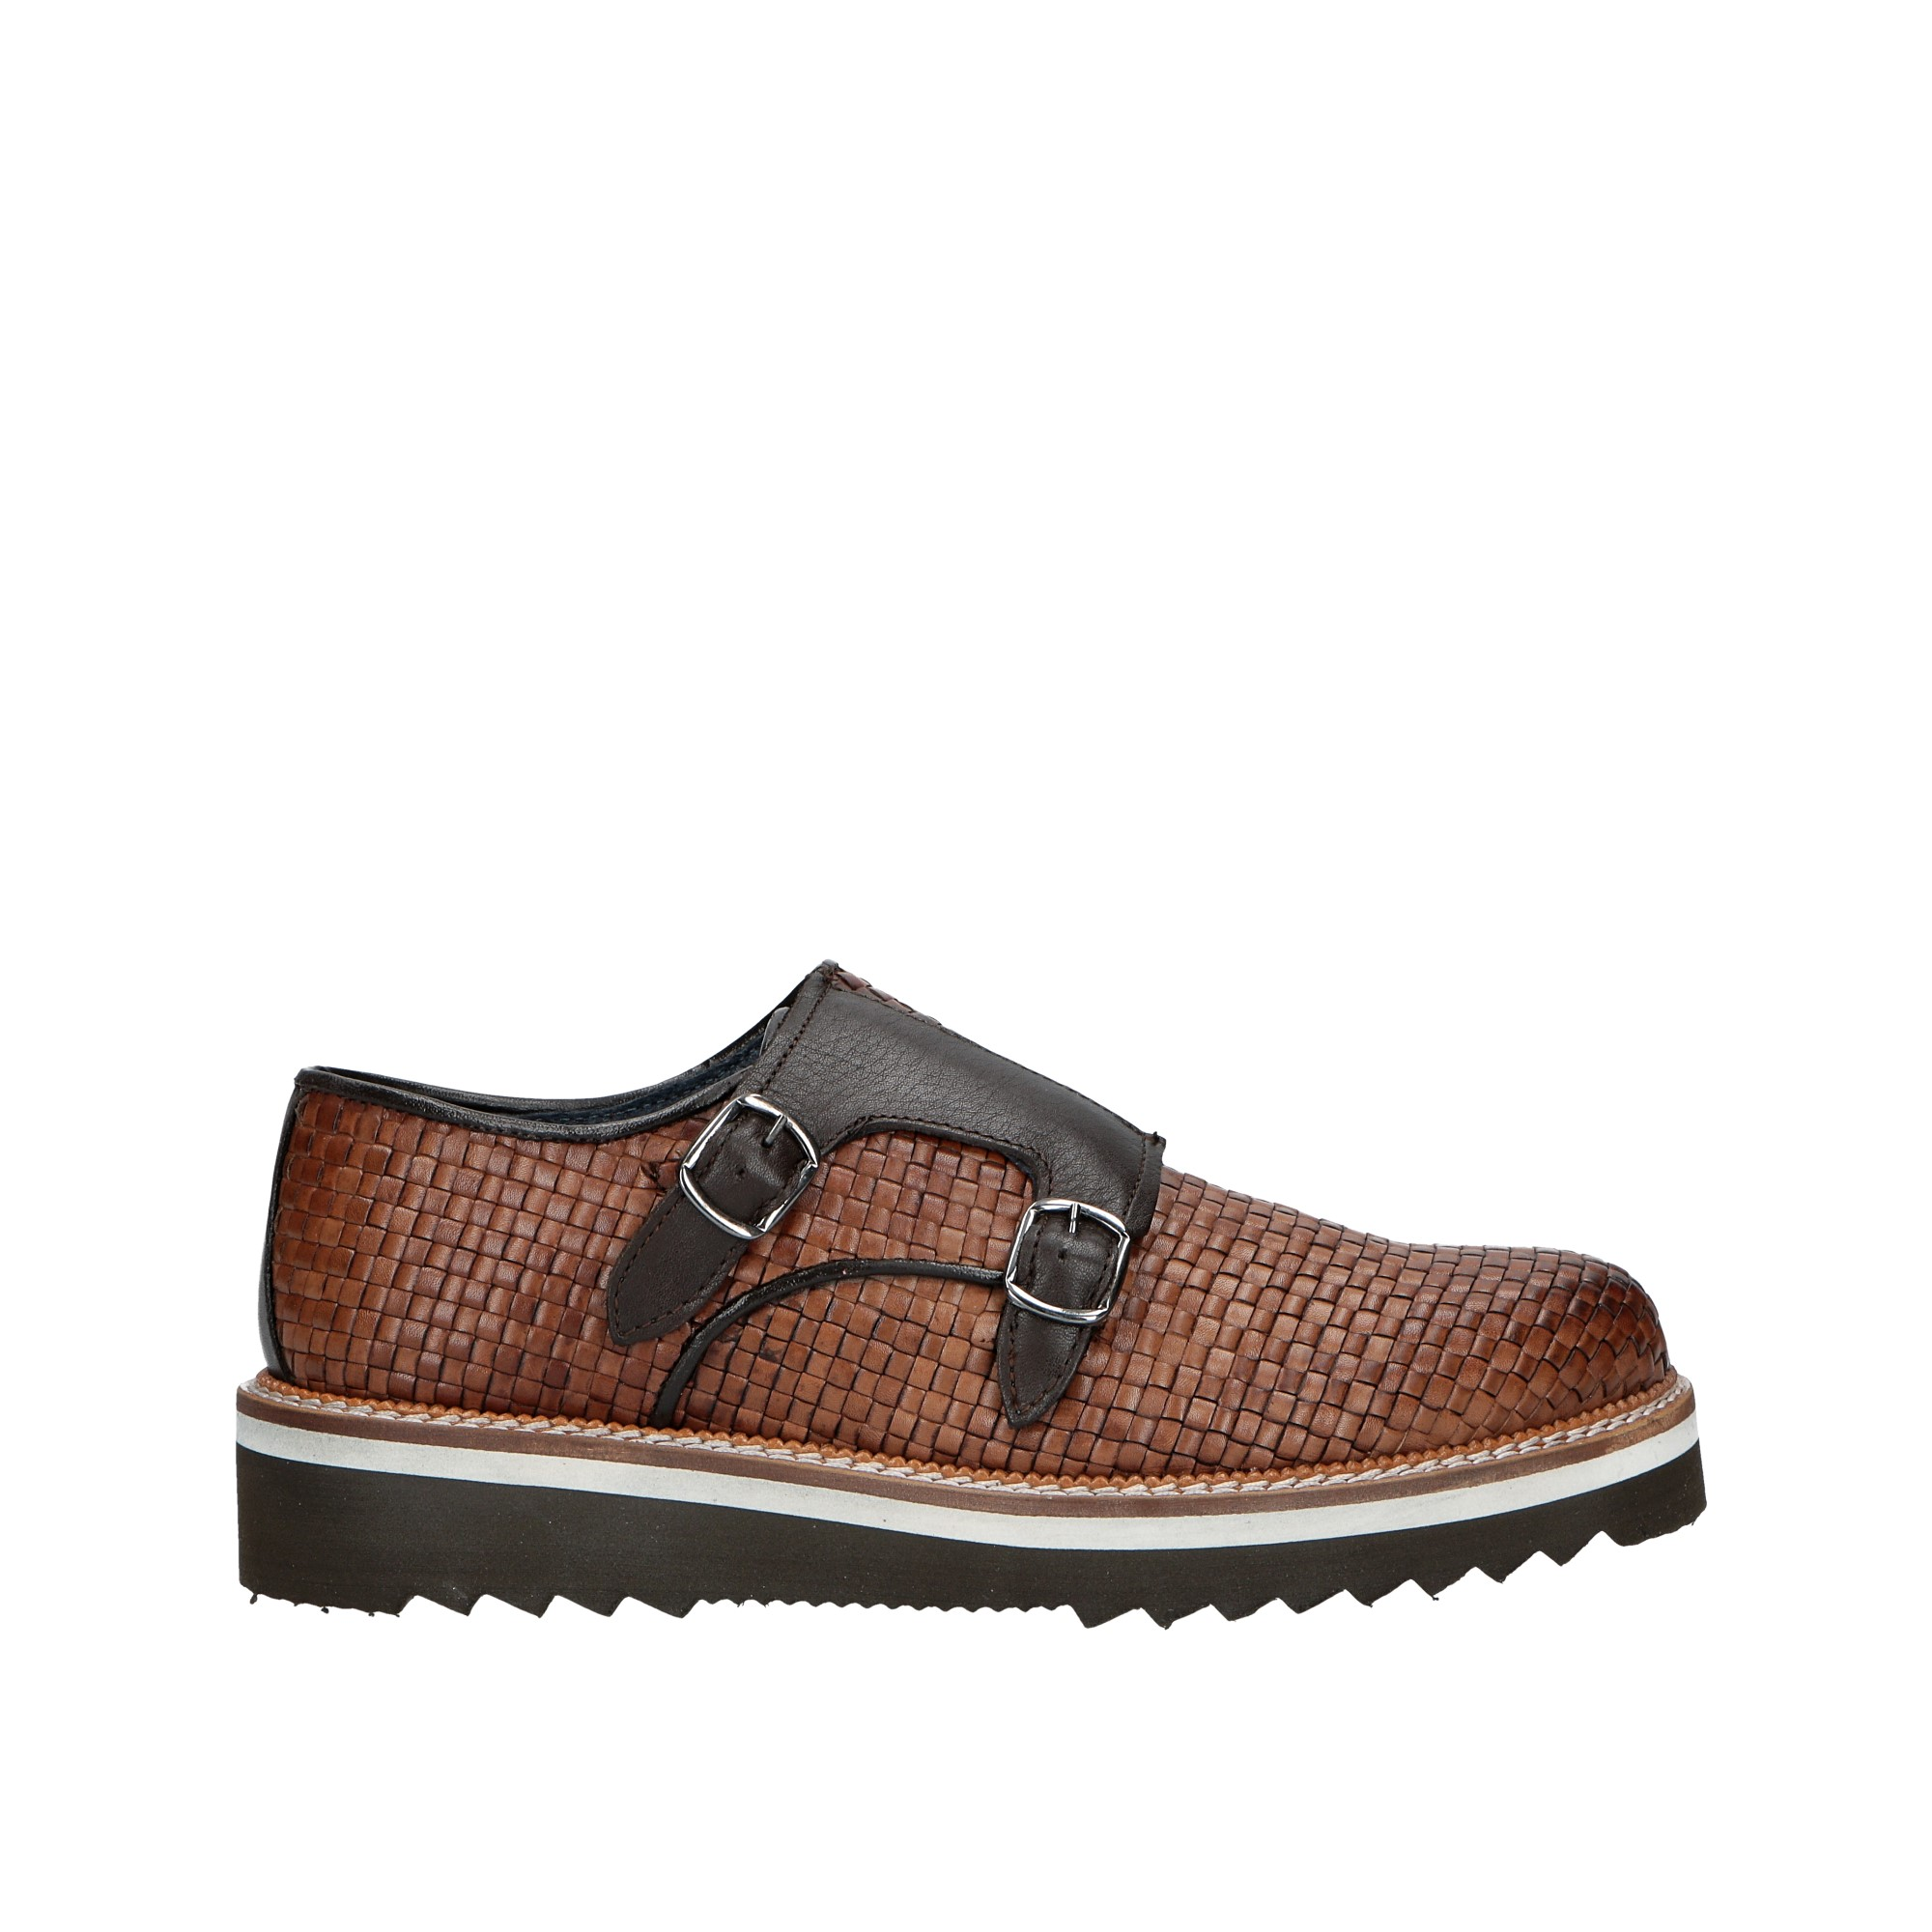 Campo neutro - braided leather shoe with flap: online sale on Claros ...